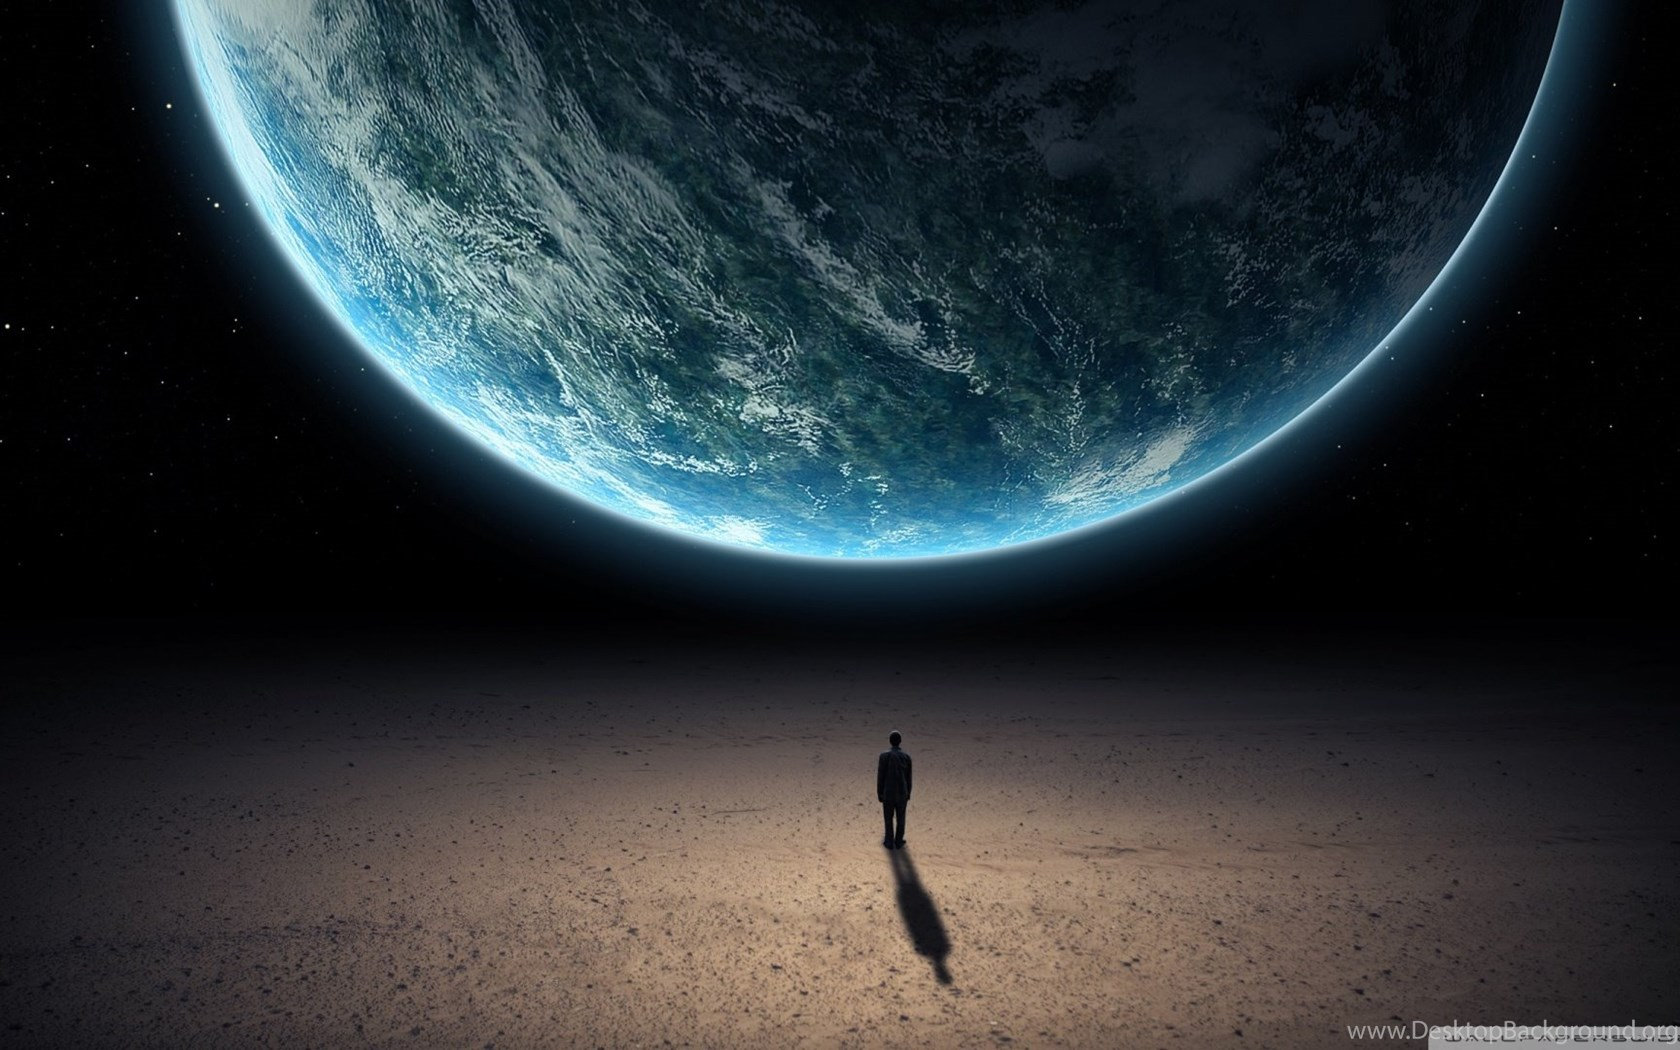 903922 alone in the universe hd desktop wallpapers high